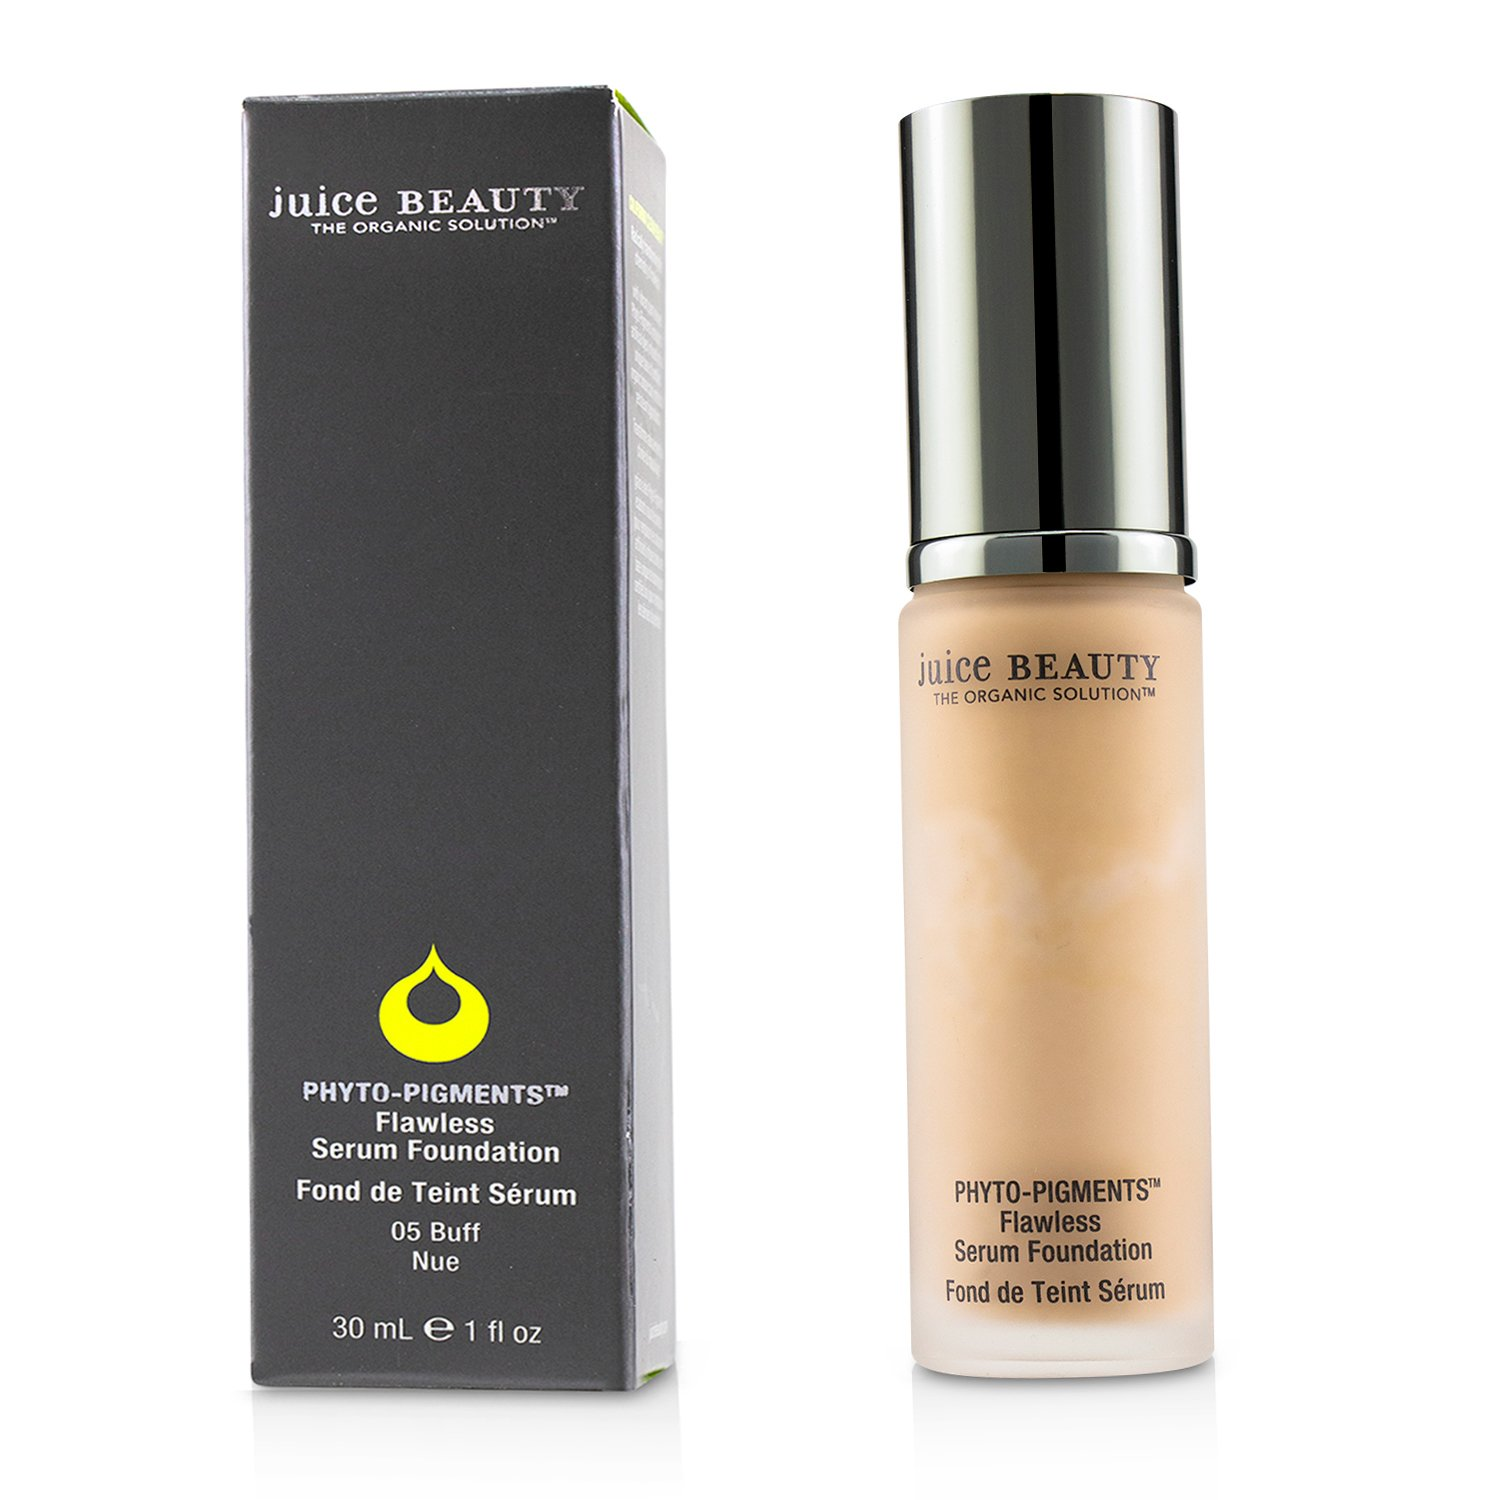 Juice-Beauty-Phyto-Pigments-Flawless-Serum-Foundation thumbnail 7